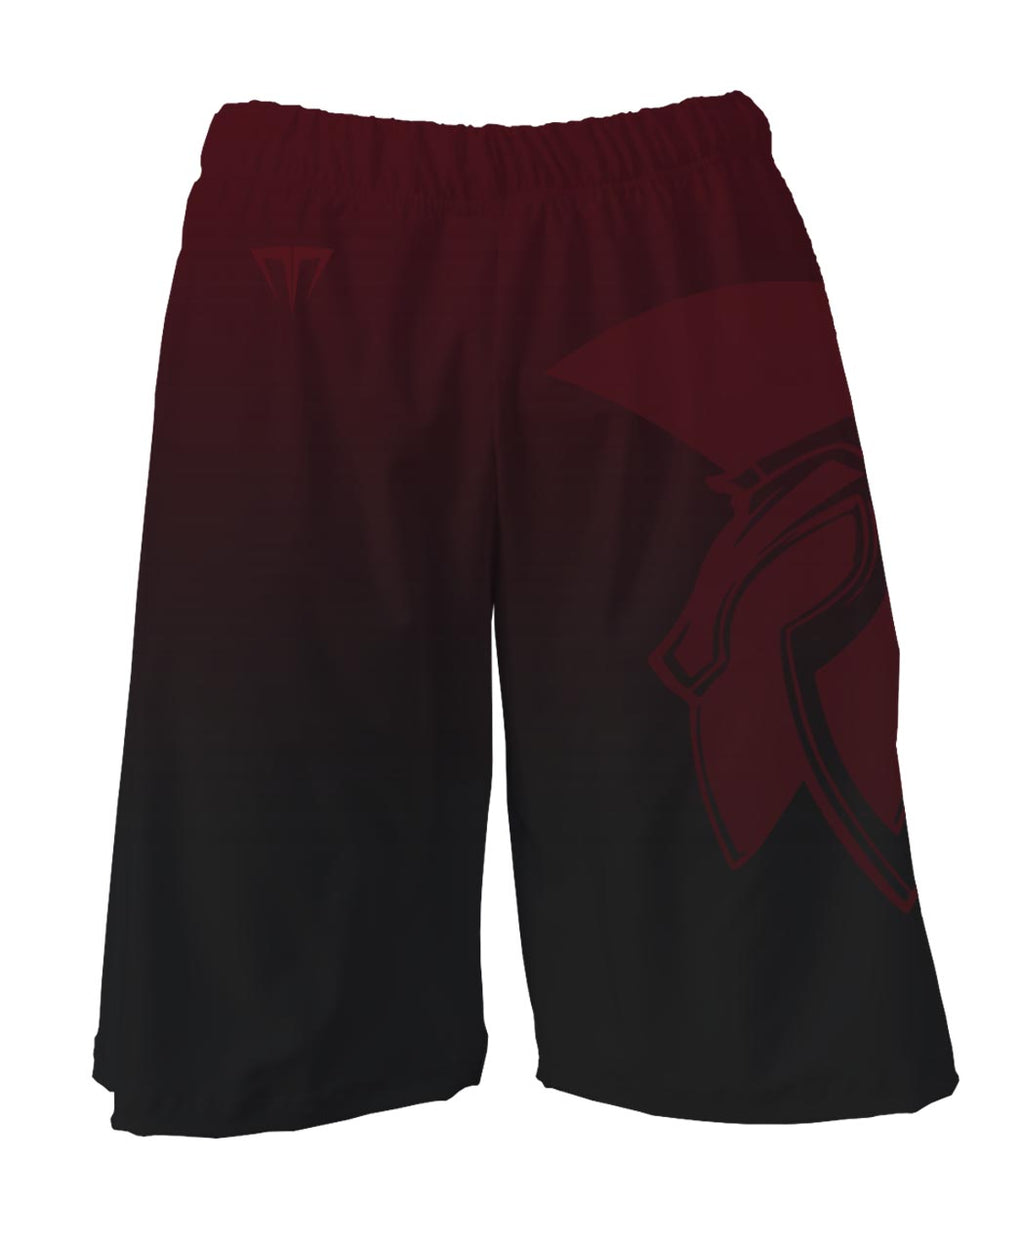 MG Indy North Warriors Ath Fit Shorts